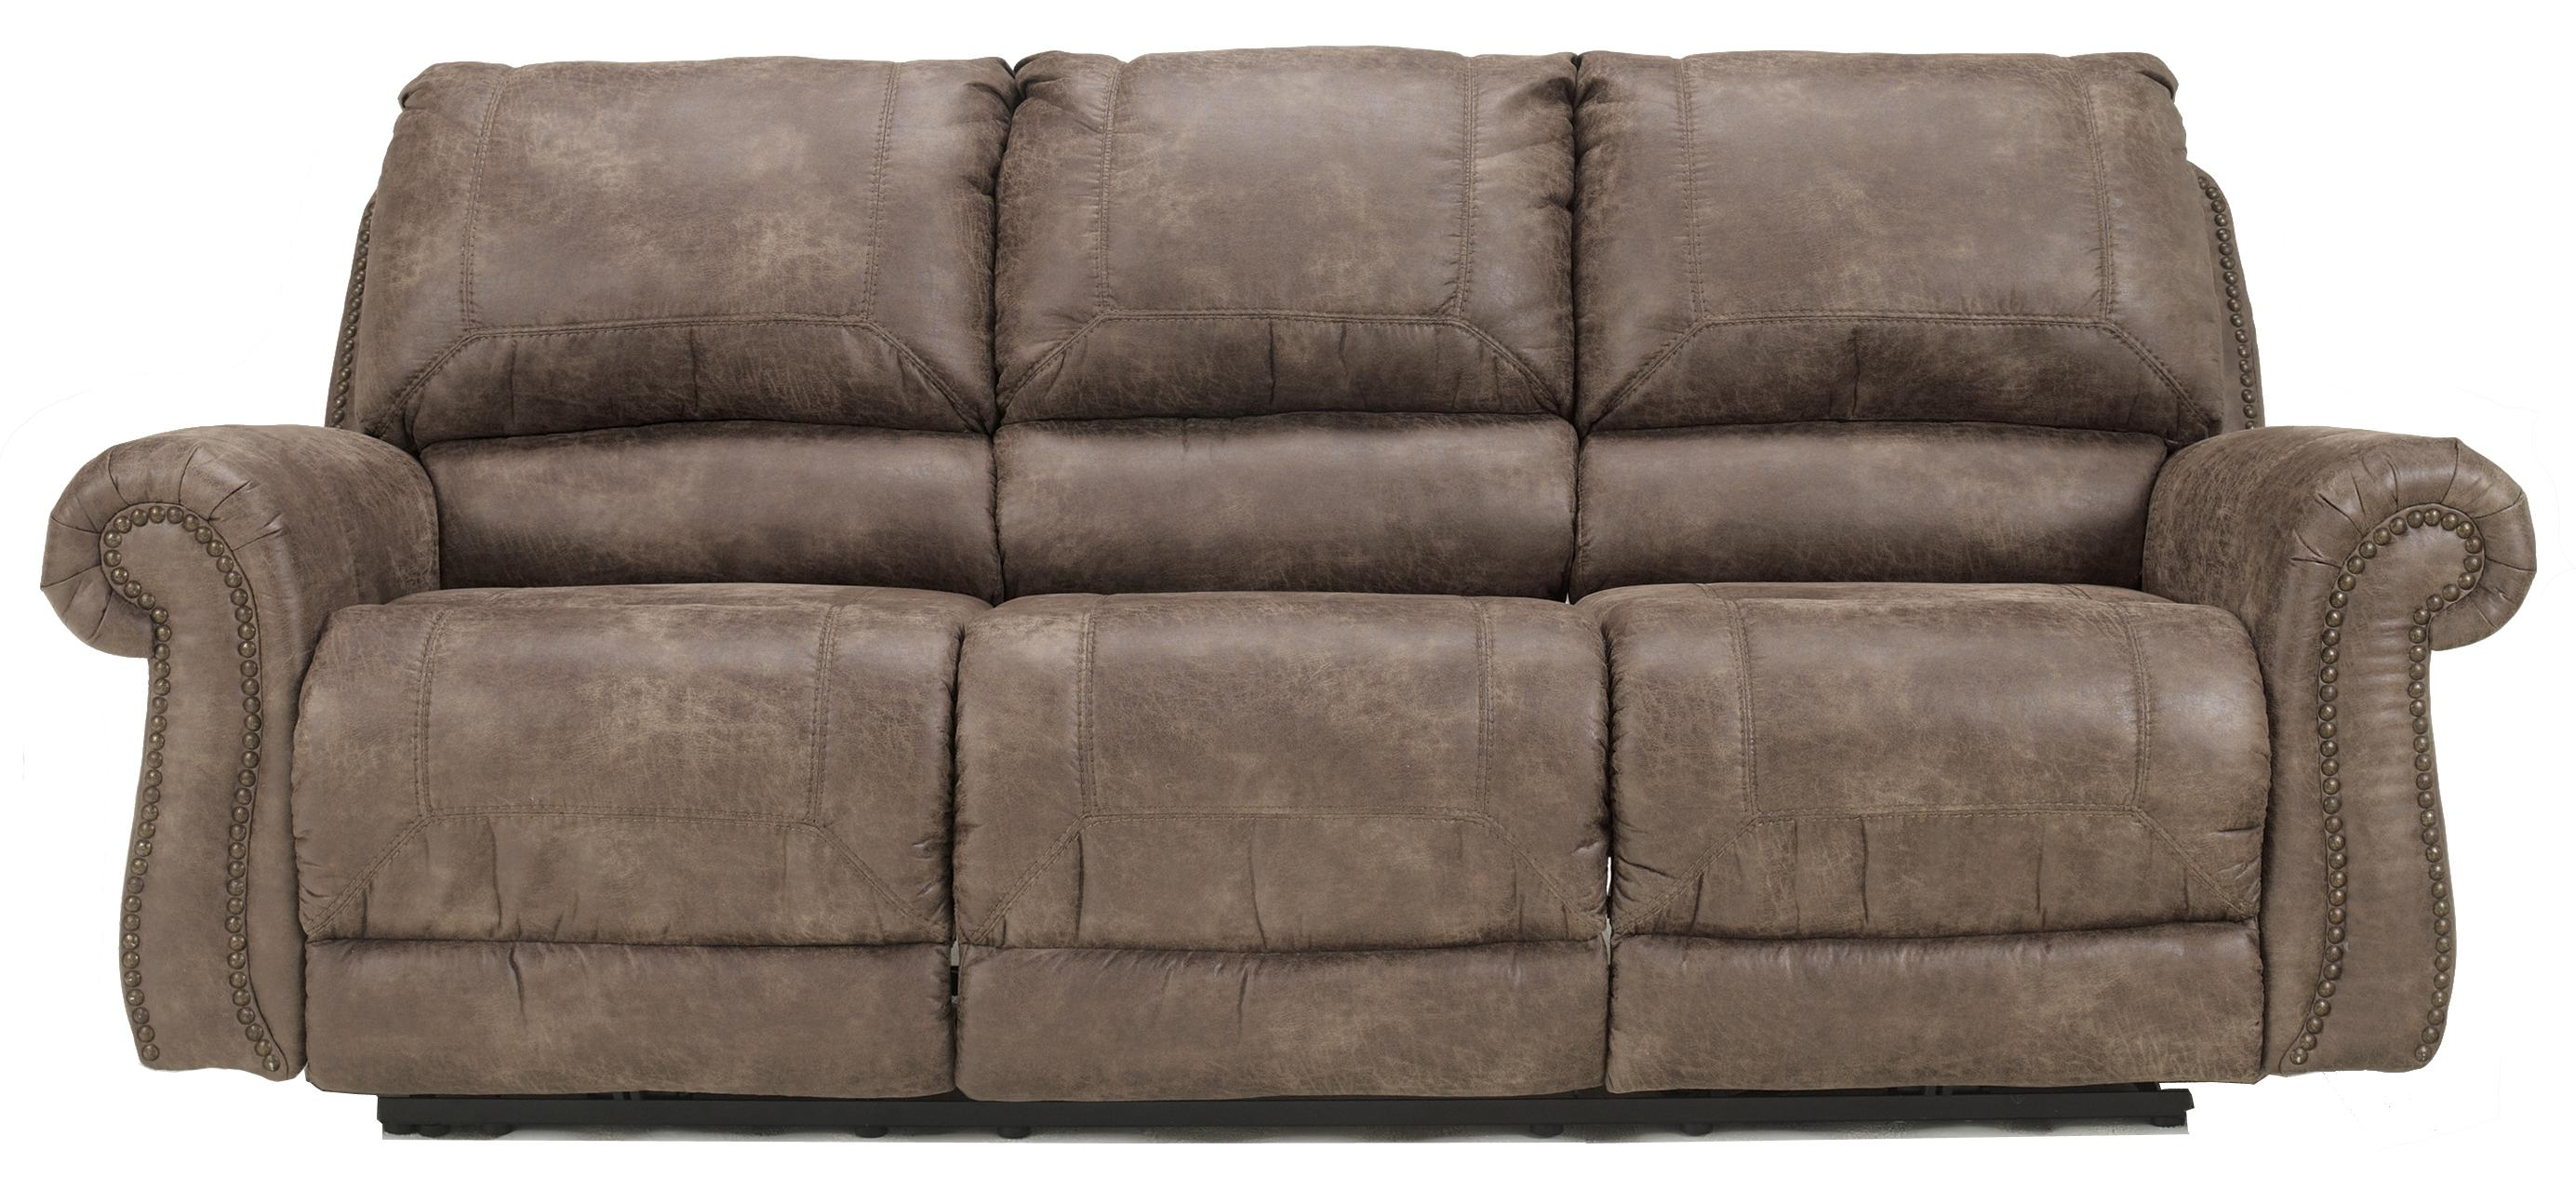 Reclining Faux Leather Sofa With Rolled Arms U0026 Nail Head Trim